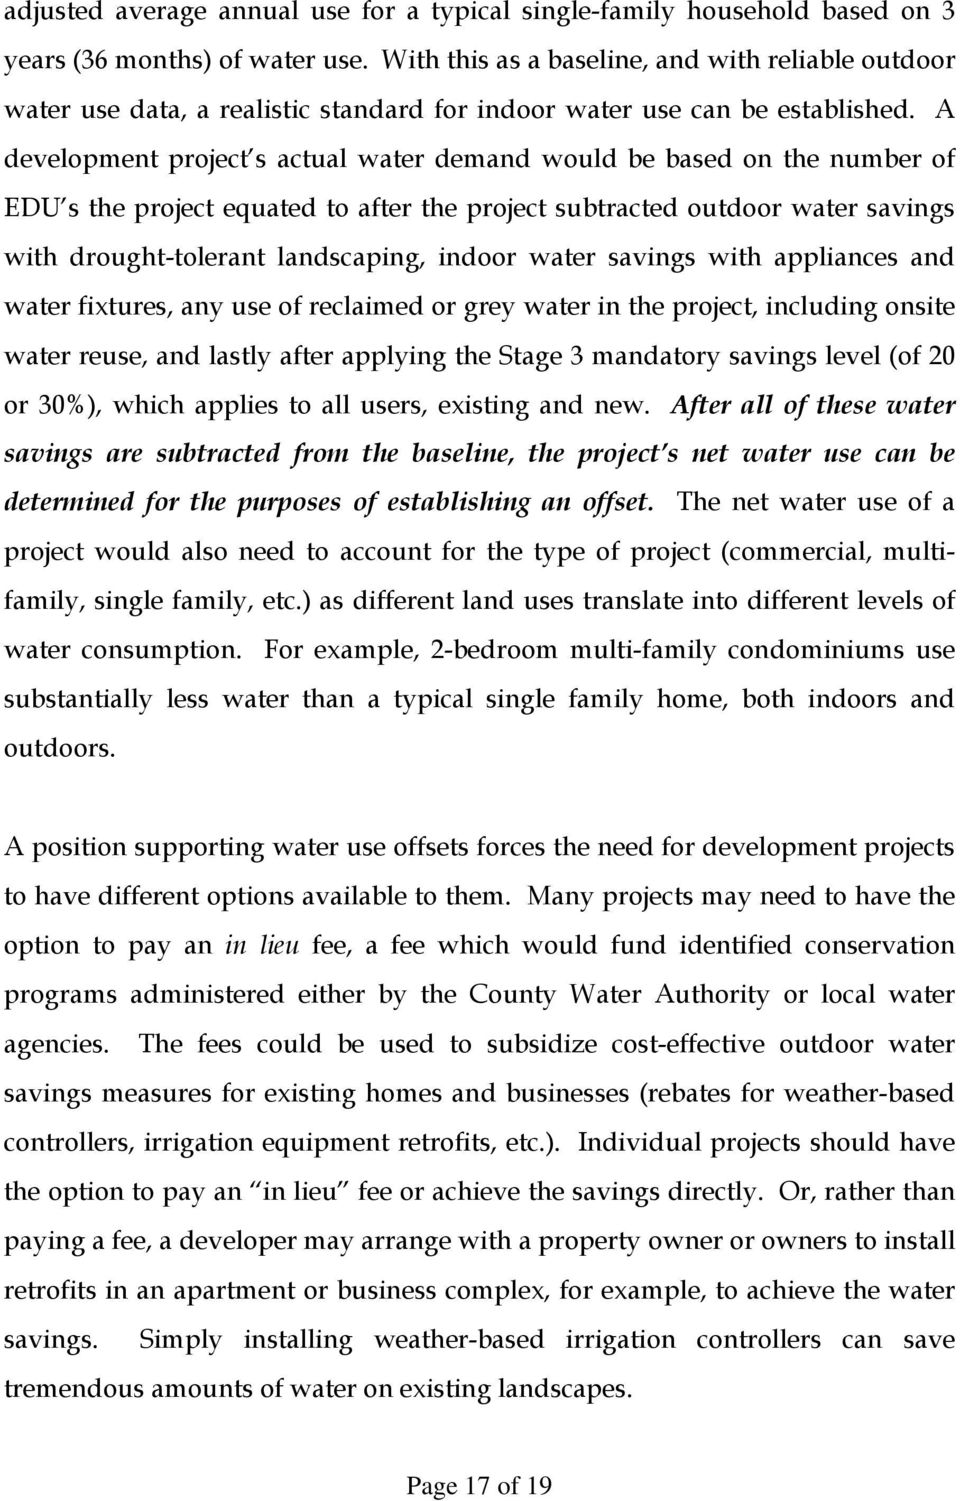 A development project s actual water demand would be based on the number of EDU s the project equated to after the project subtracted outdoor water savings with drought-tolerant landscaping, indoor